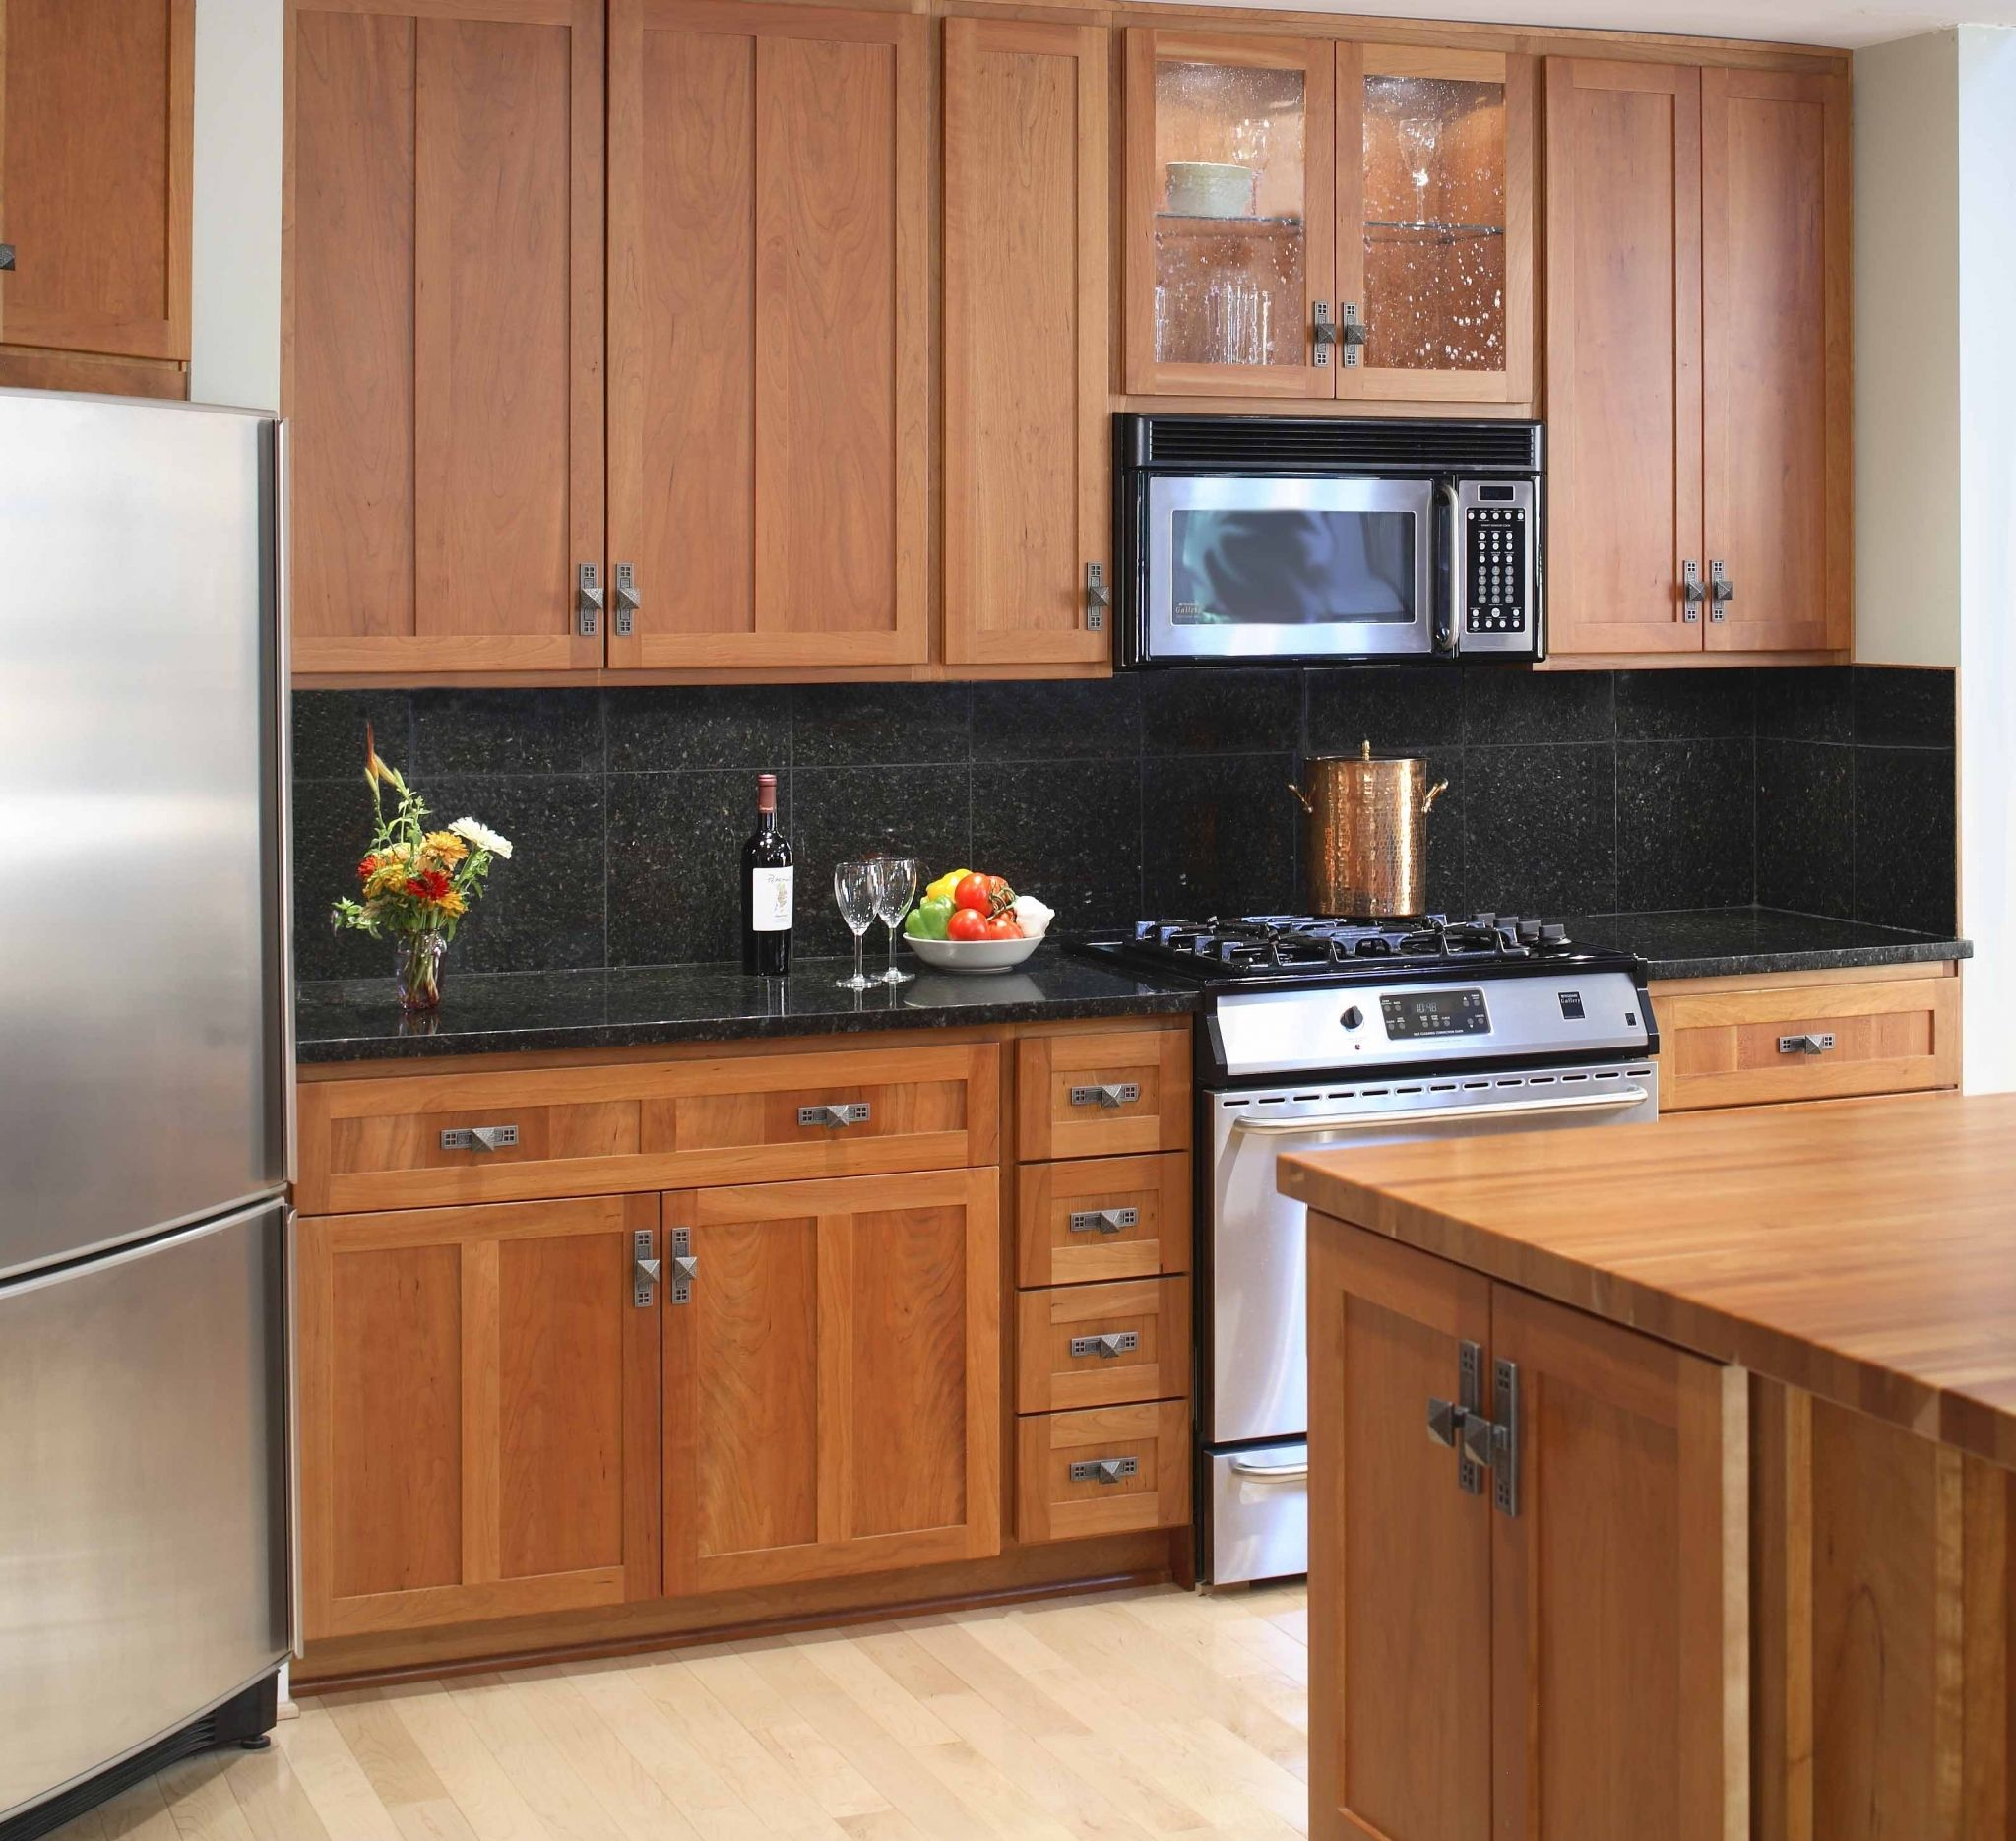 Kitchen Flooring Ideas With Oak Cabinets  Kitchen Remodel Ideas Fair Kitchen Designs With Oak Cabinets Decorating Inspiration